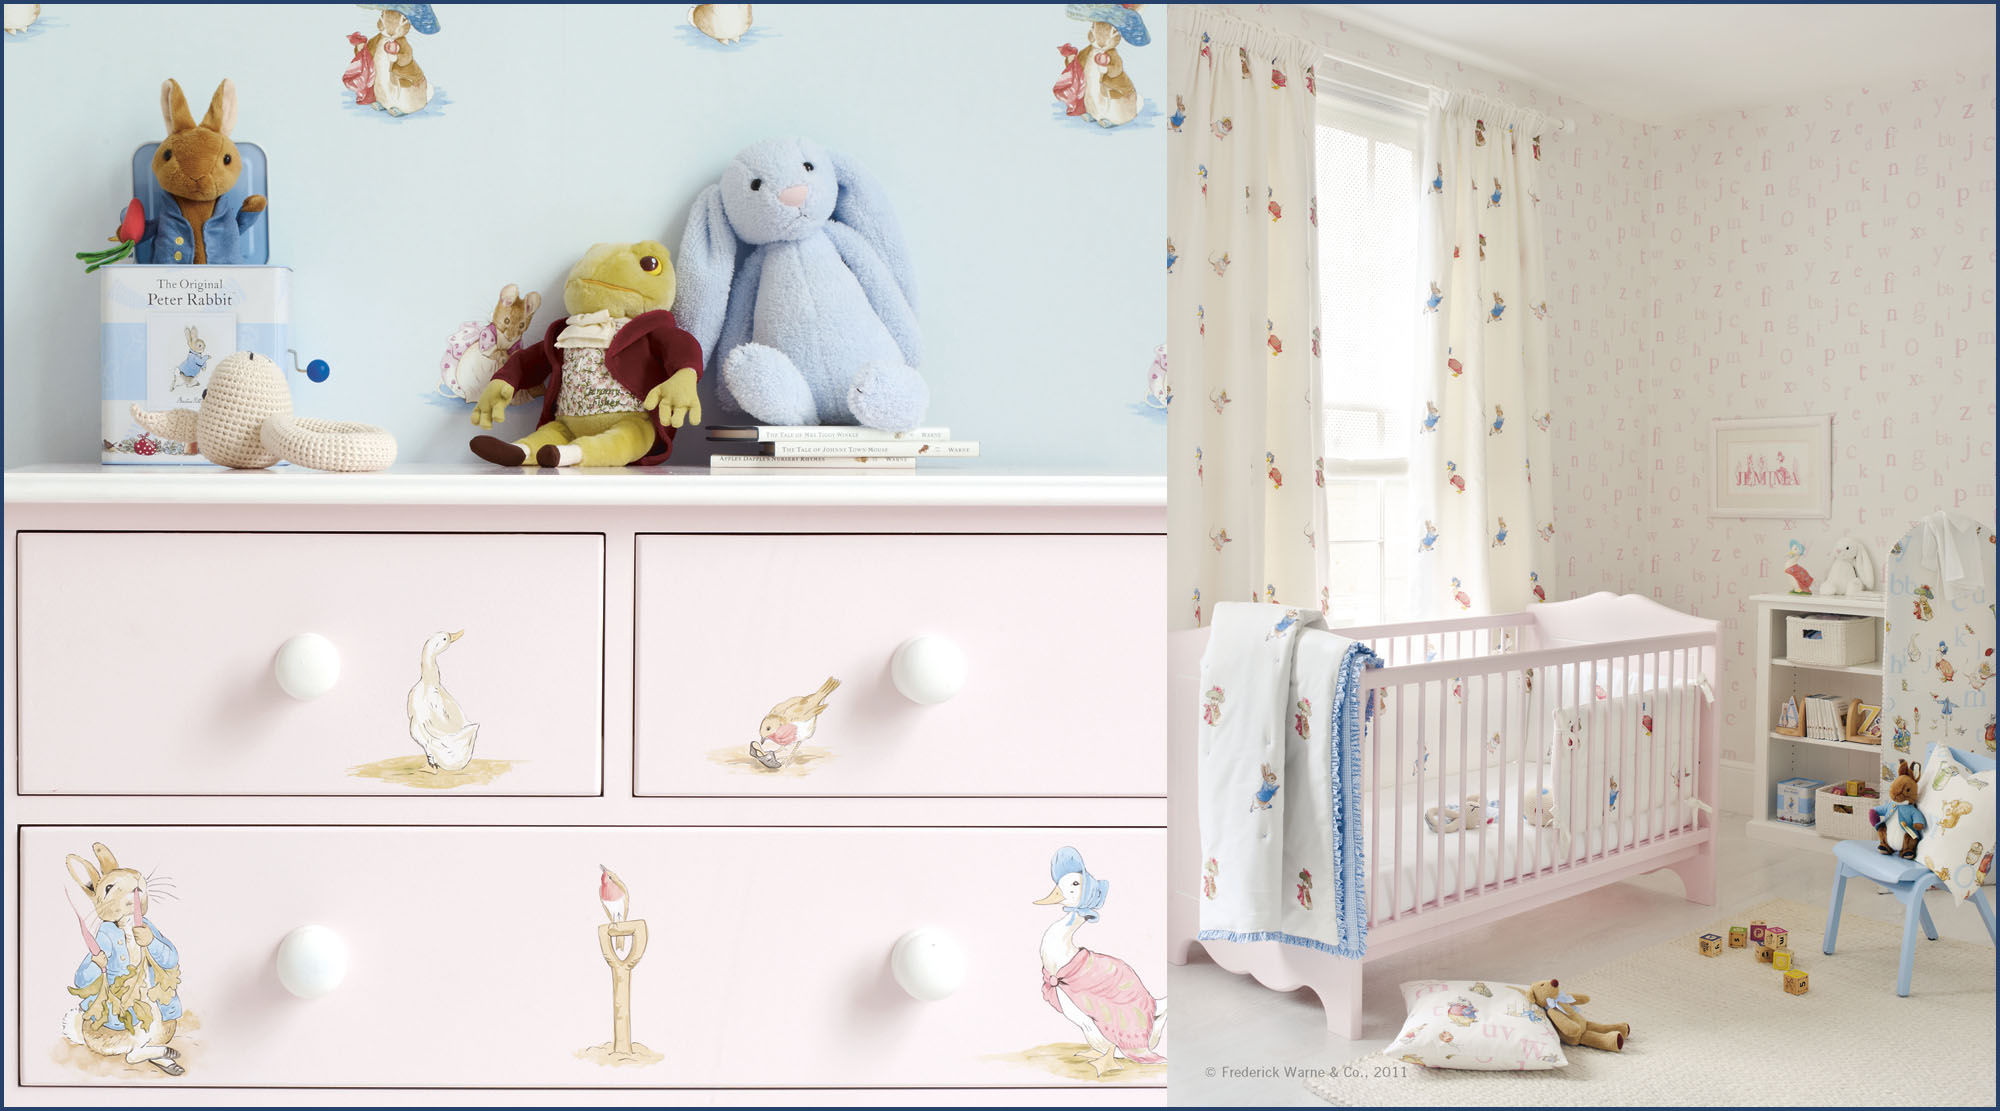 Child's bedroom with Peter Rabbit fabrics and wallpapers